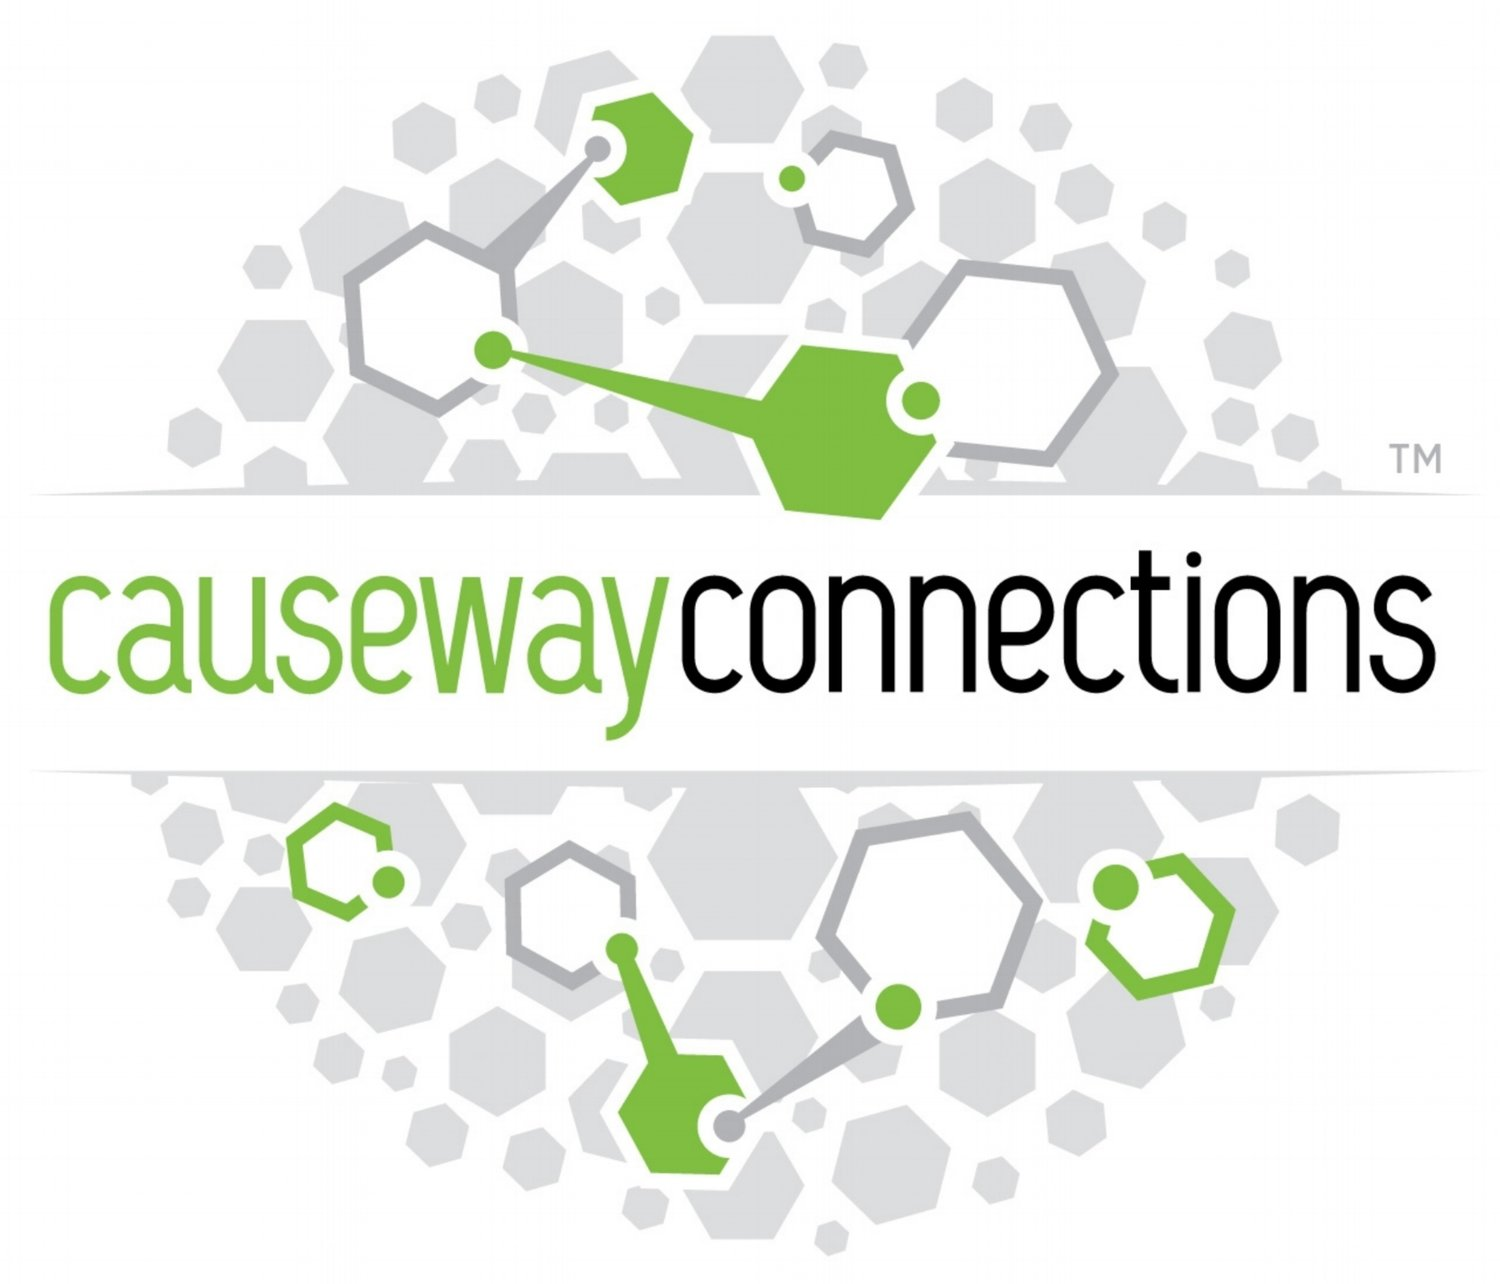 Causeway-Connections